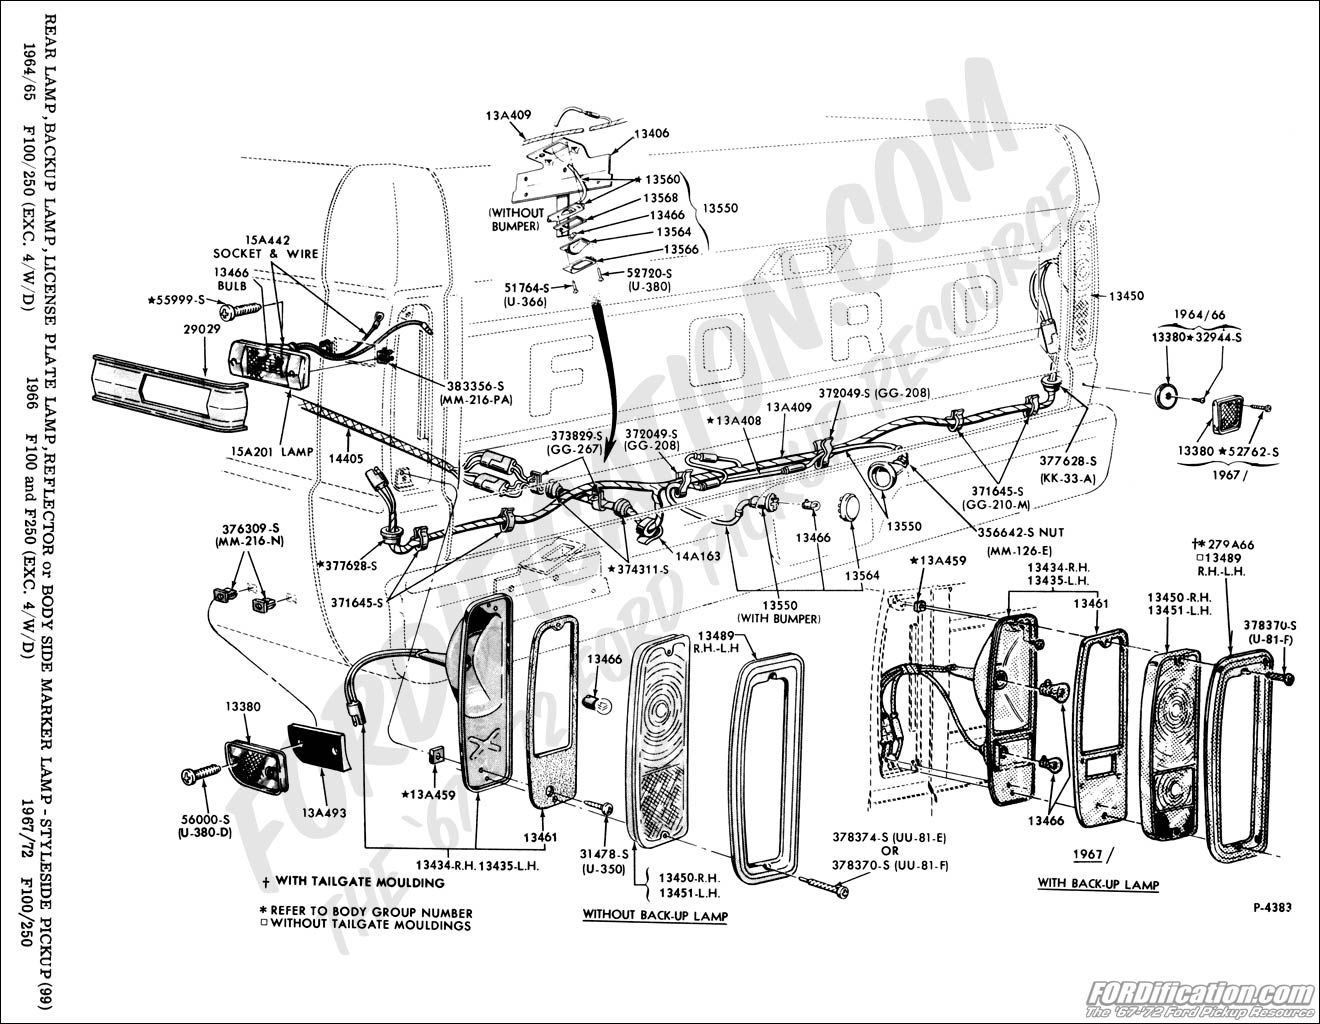 Pagsta Wiring Diagram Norton Wiring Diagram Wiring Diagram